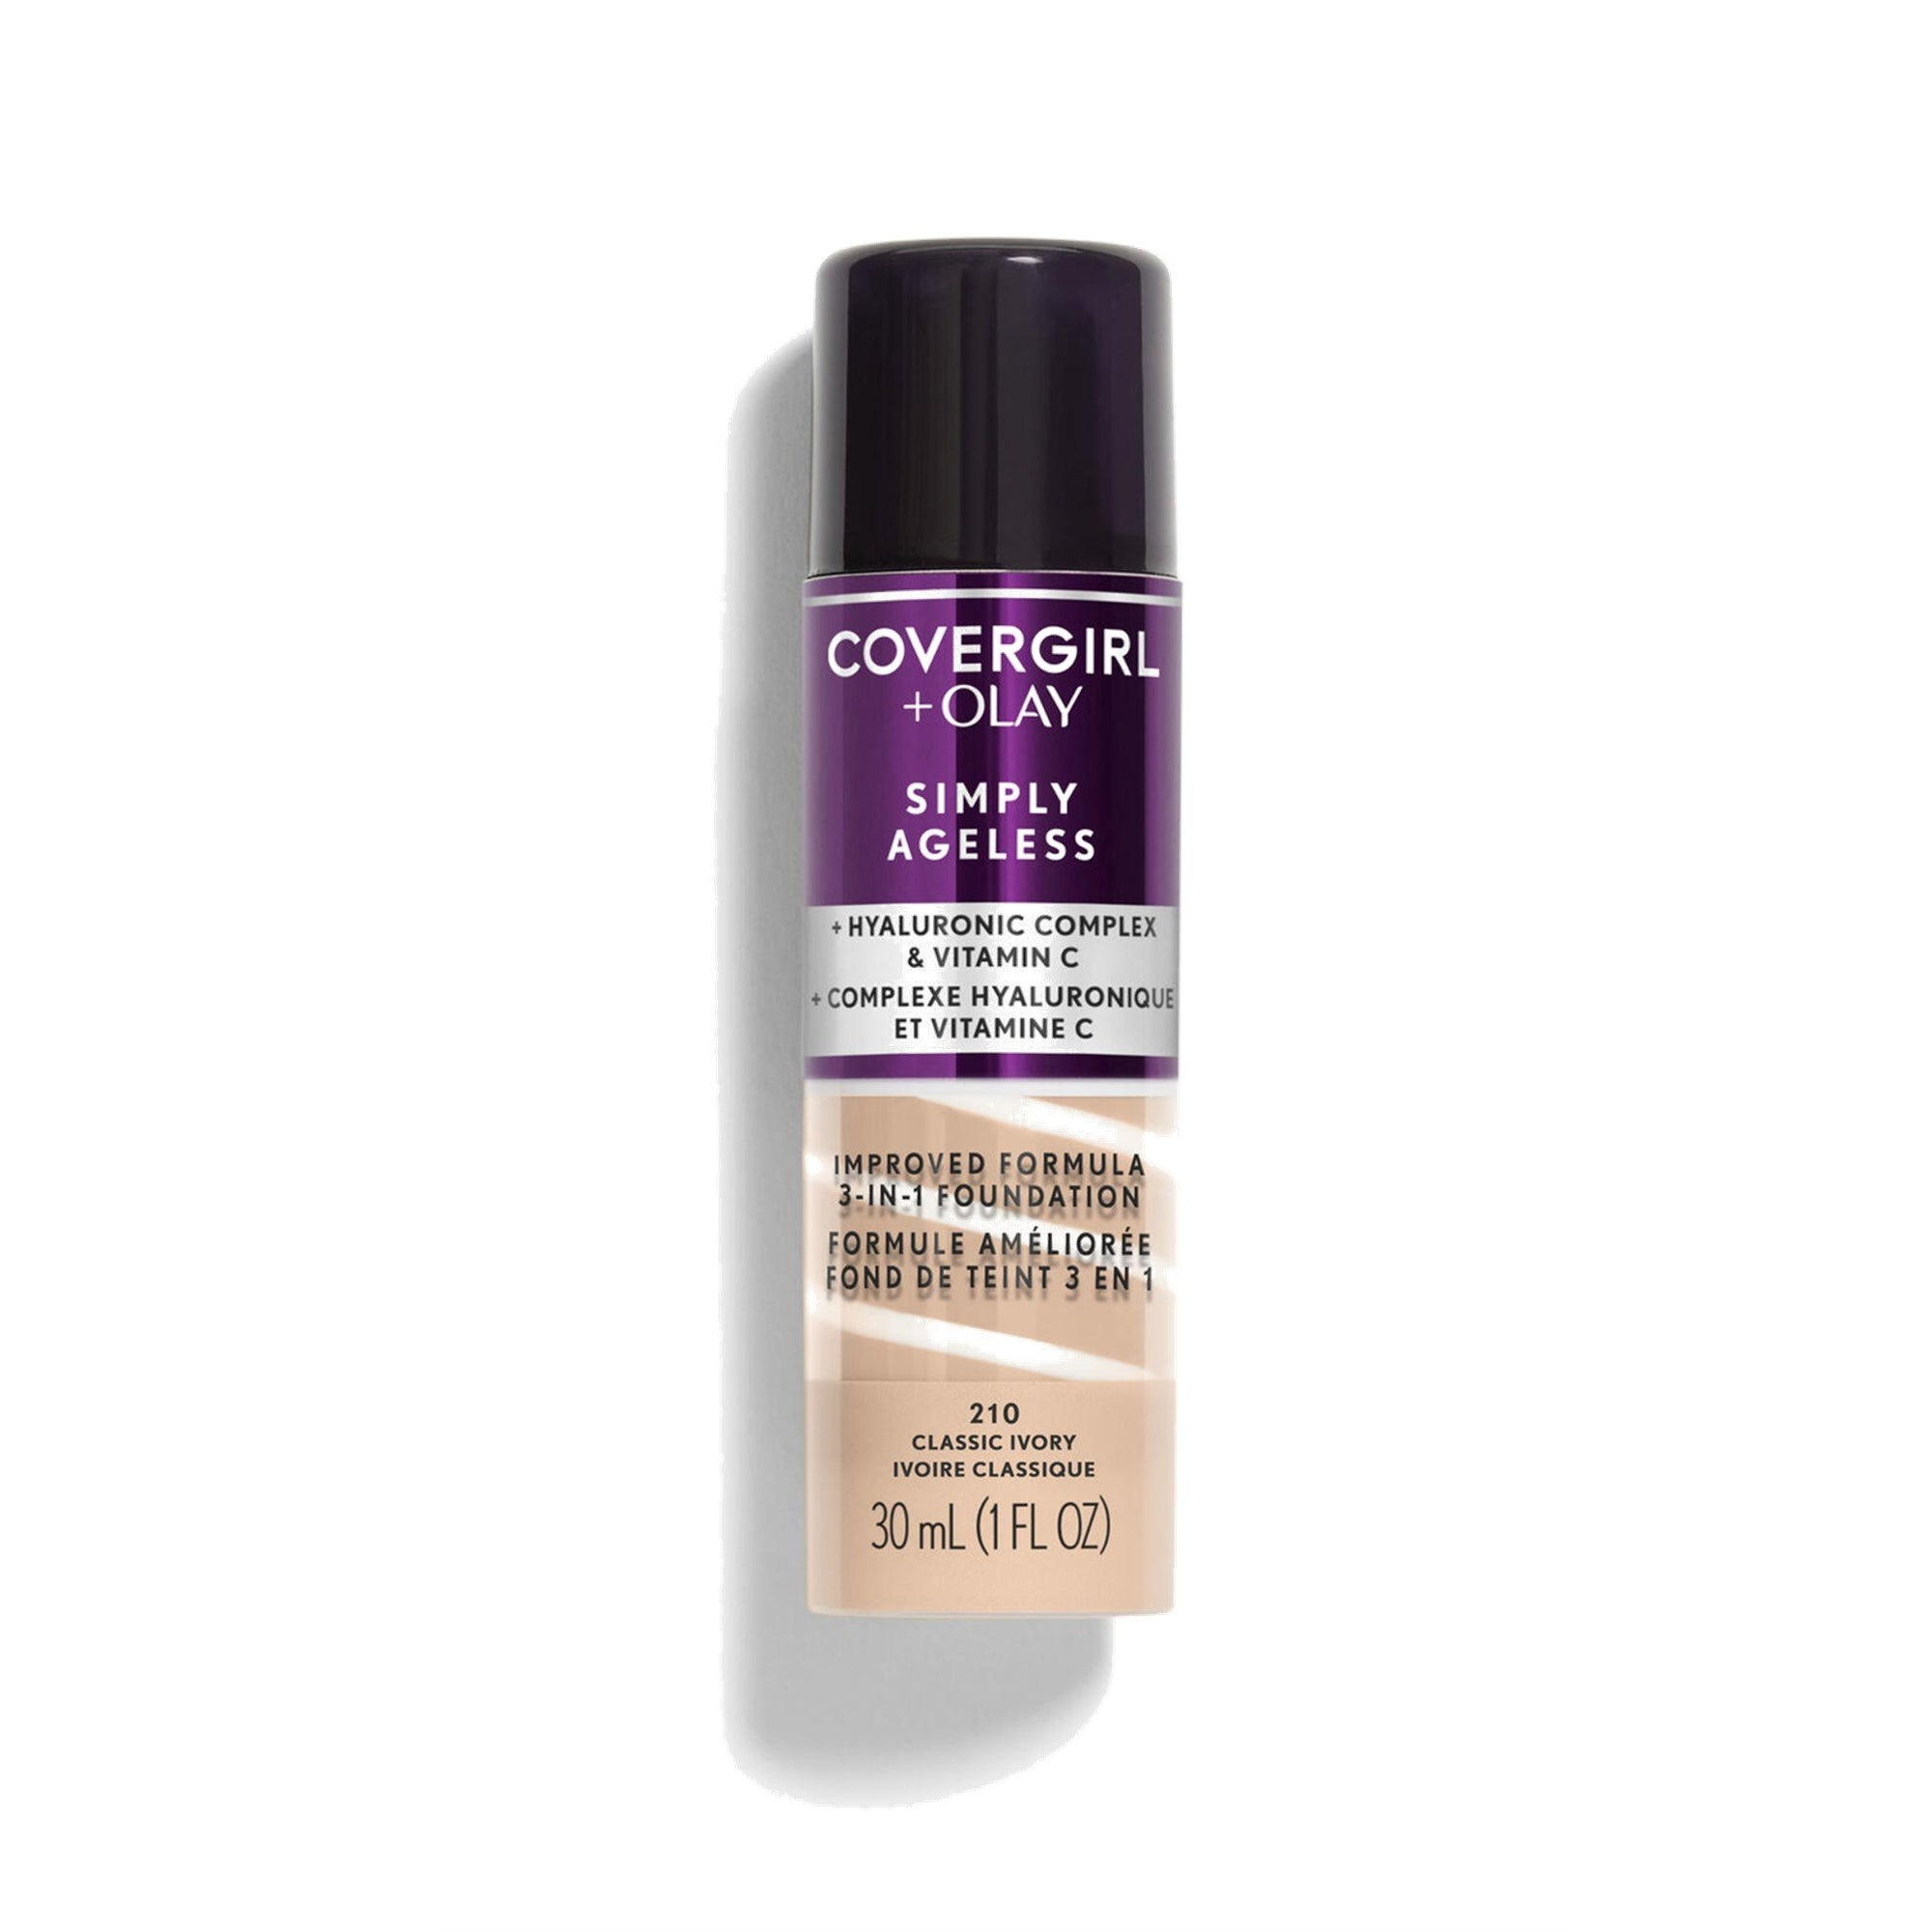 Covergirl Simply Ageless 3in1 Foundation